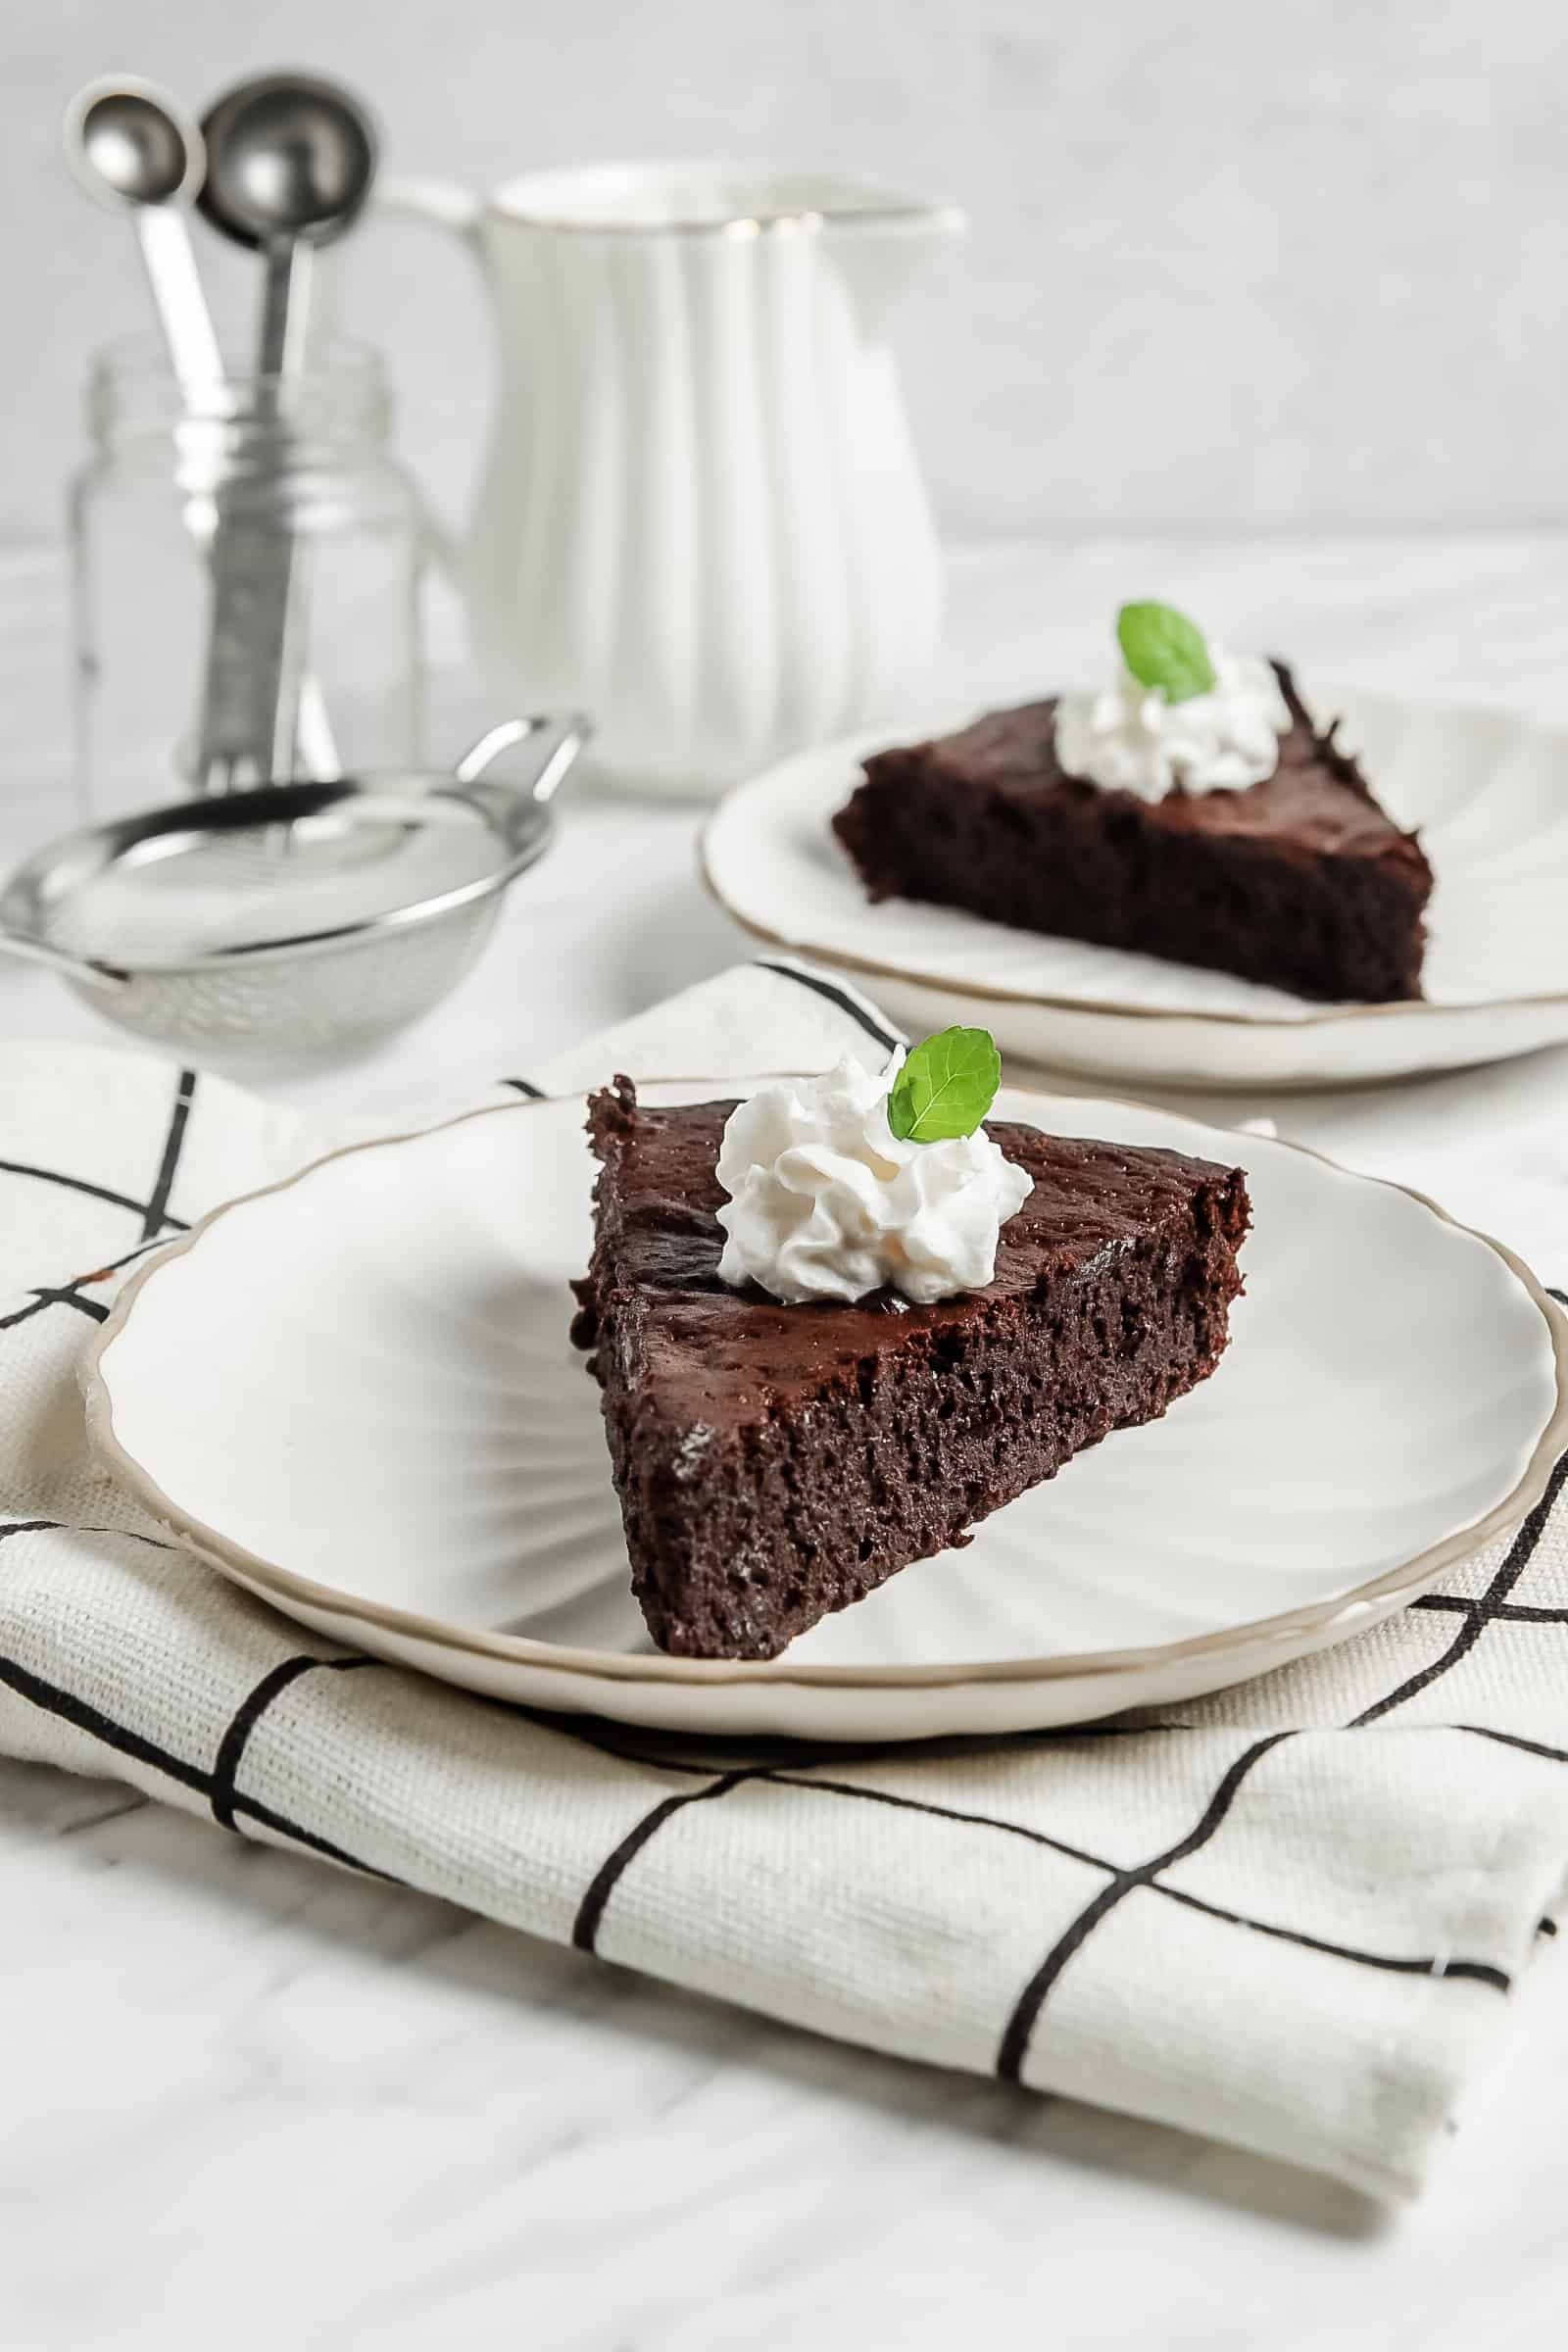 two slices of flourless chocolate cake on a plates